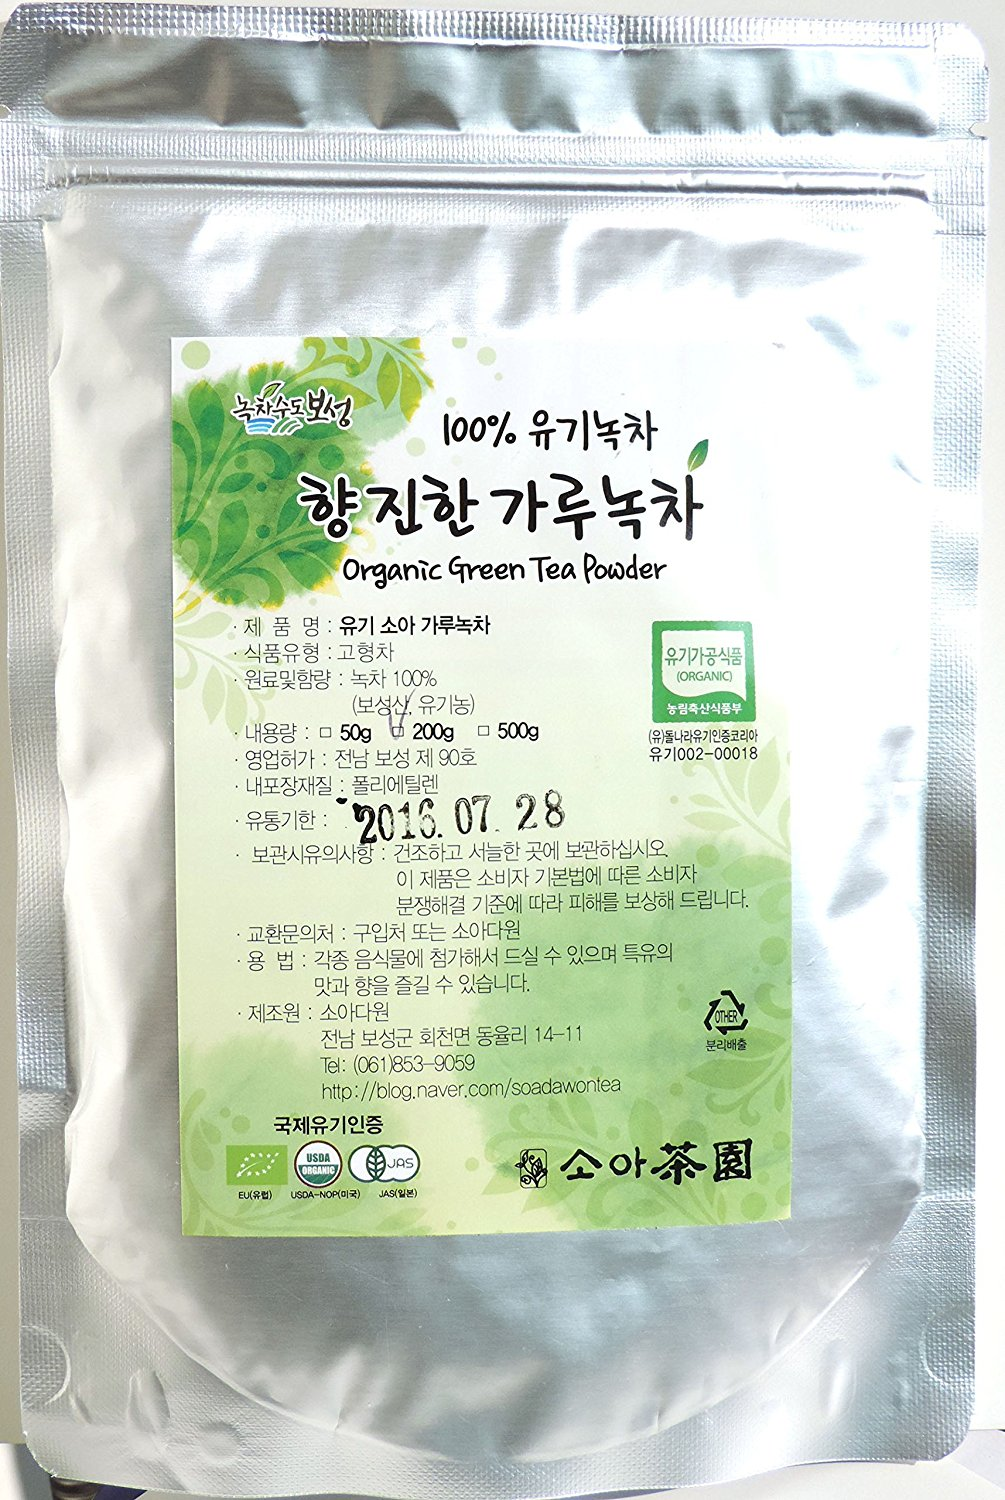 100% Pure Organic Matcha Finest Premium Quality of Soadawon Green Tea Powder Deep Favor USDA Certified - 7 Oz / 200 G